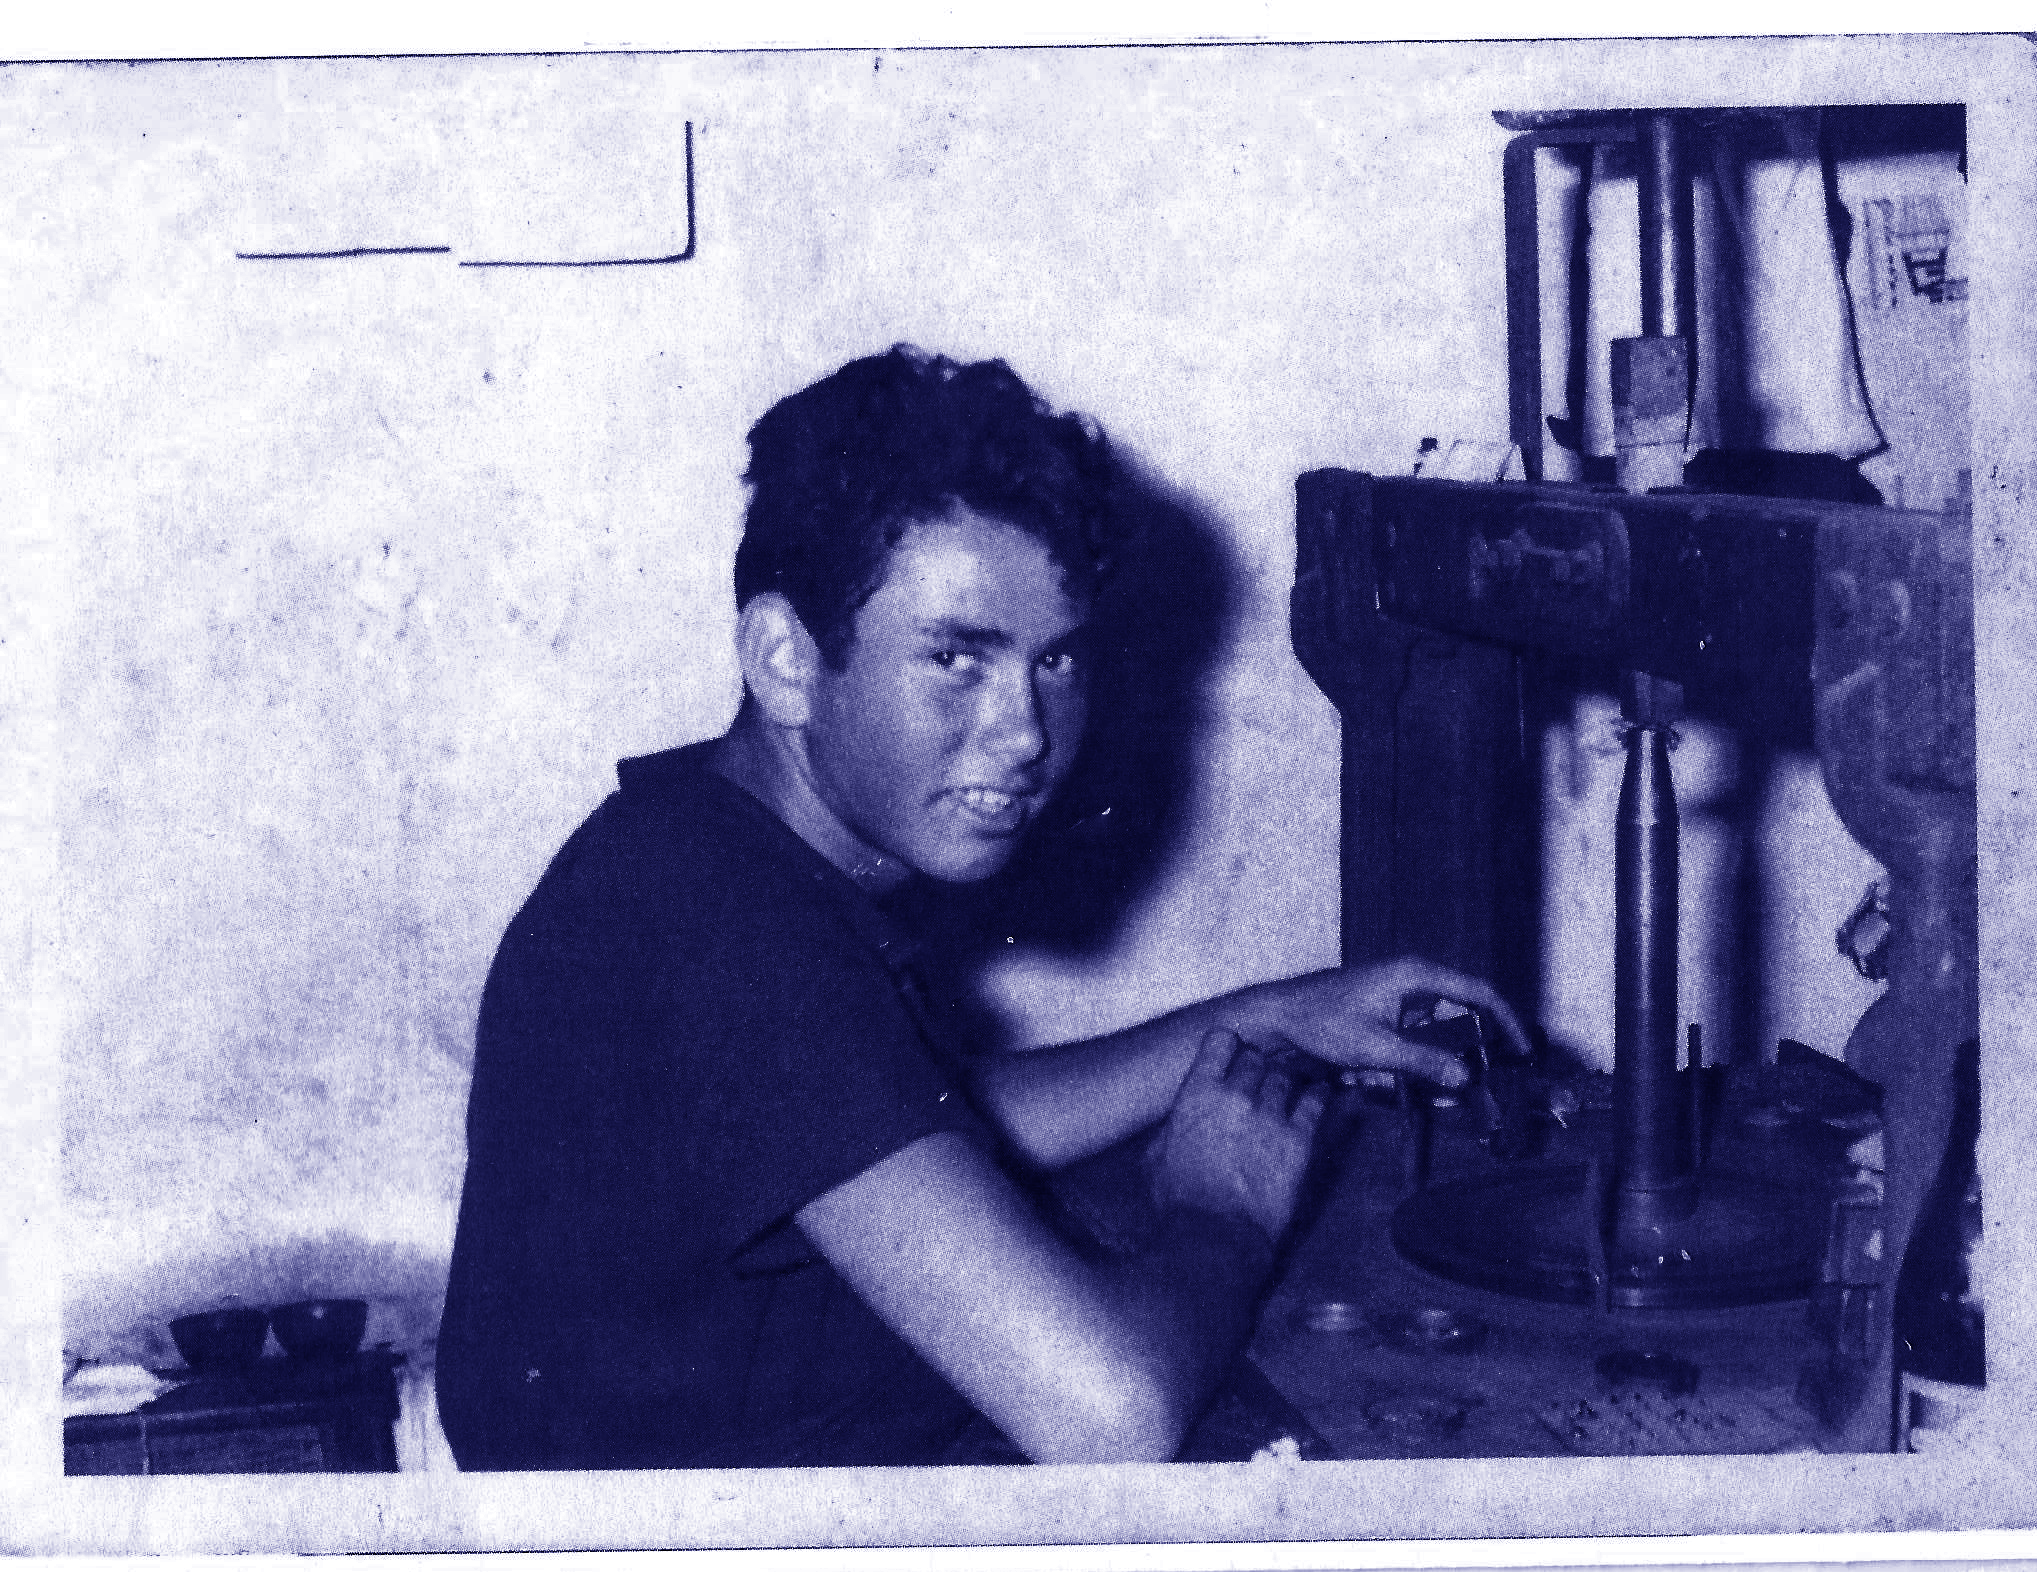 Zevika cutting diamonds at age 12 in 1962.